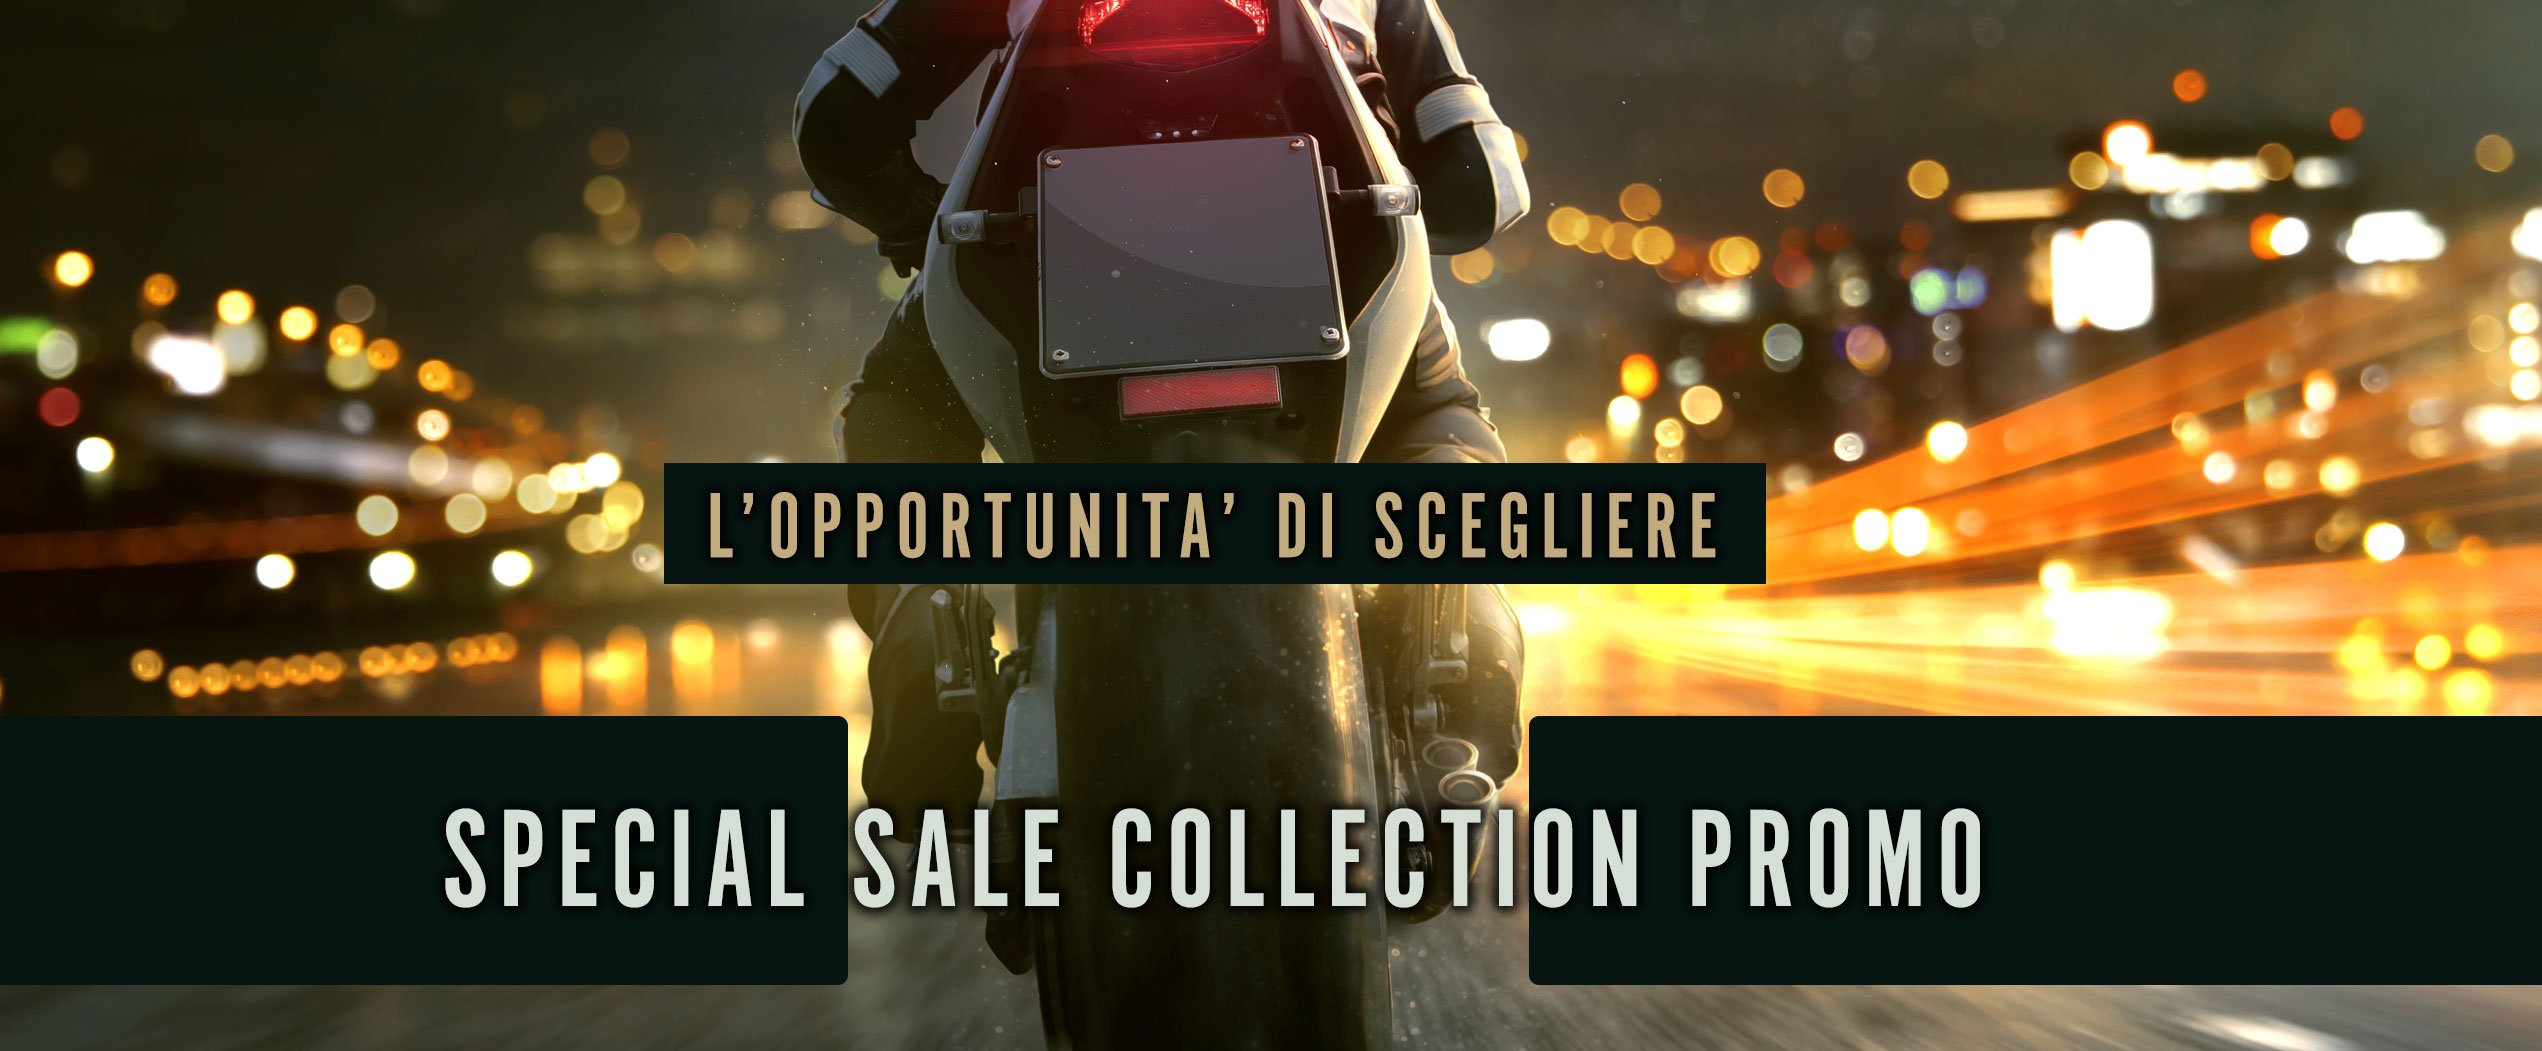 Special Sale Collection Promo